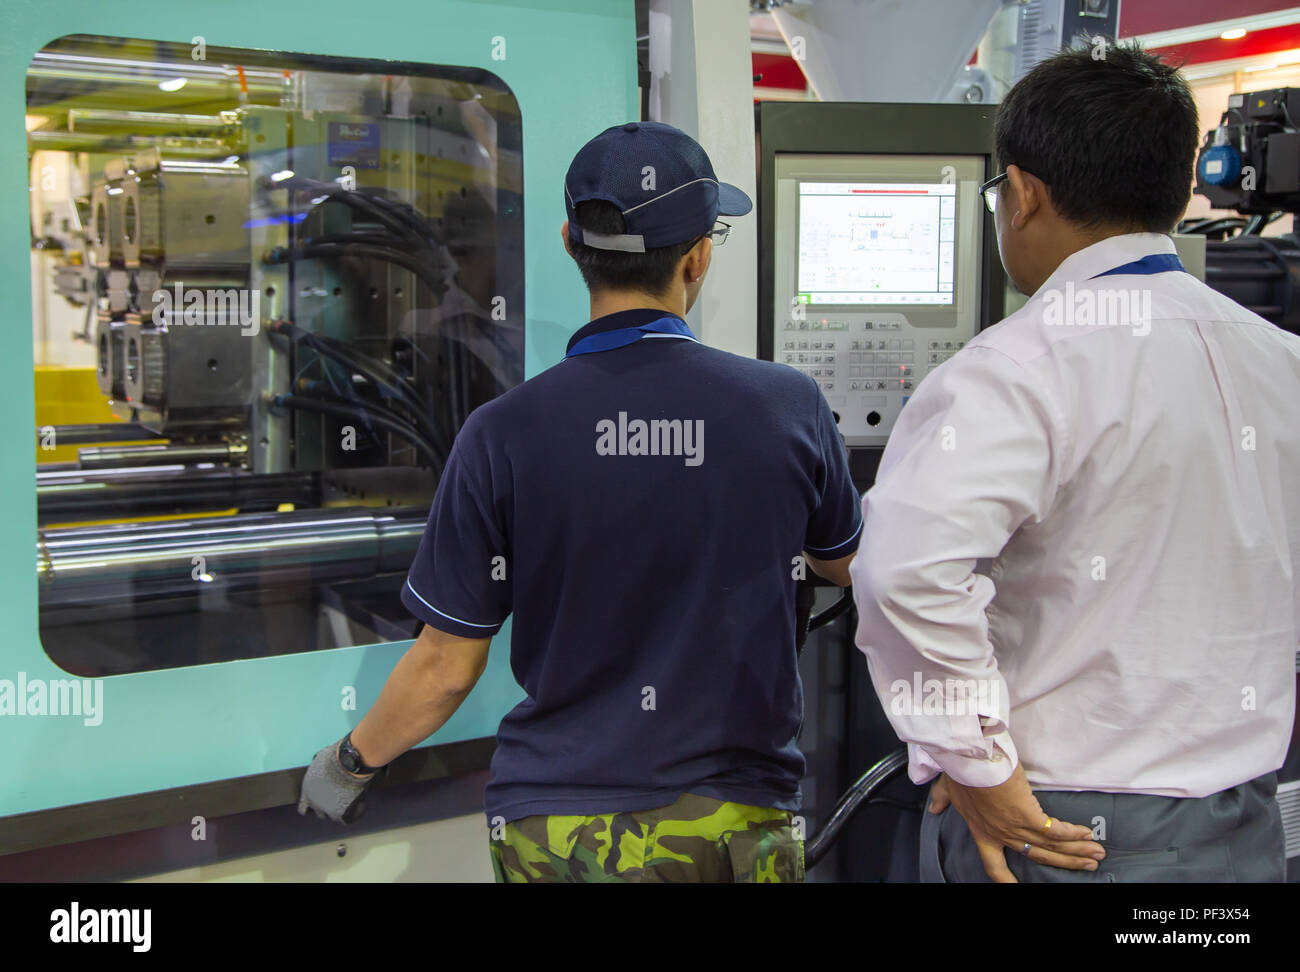 worker operate industrial plastic injection molding press machine for manufacturing - Stock Image